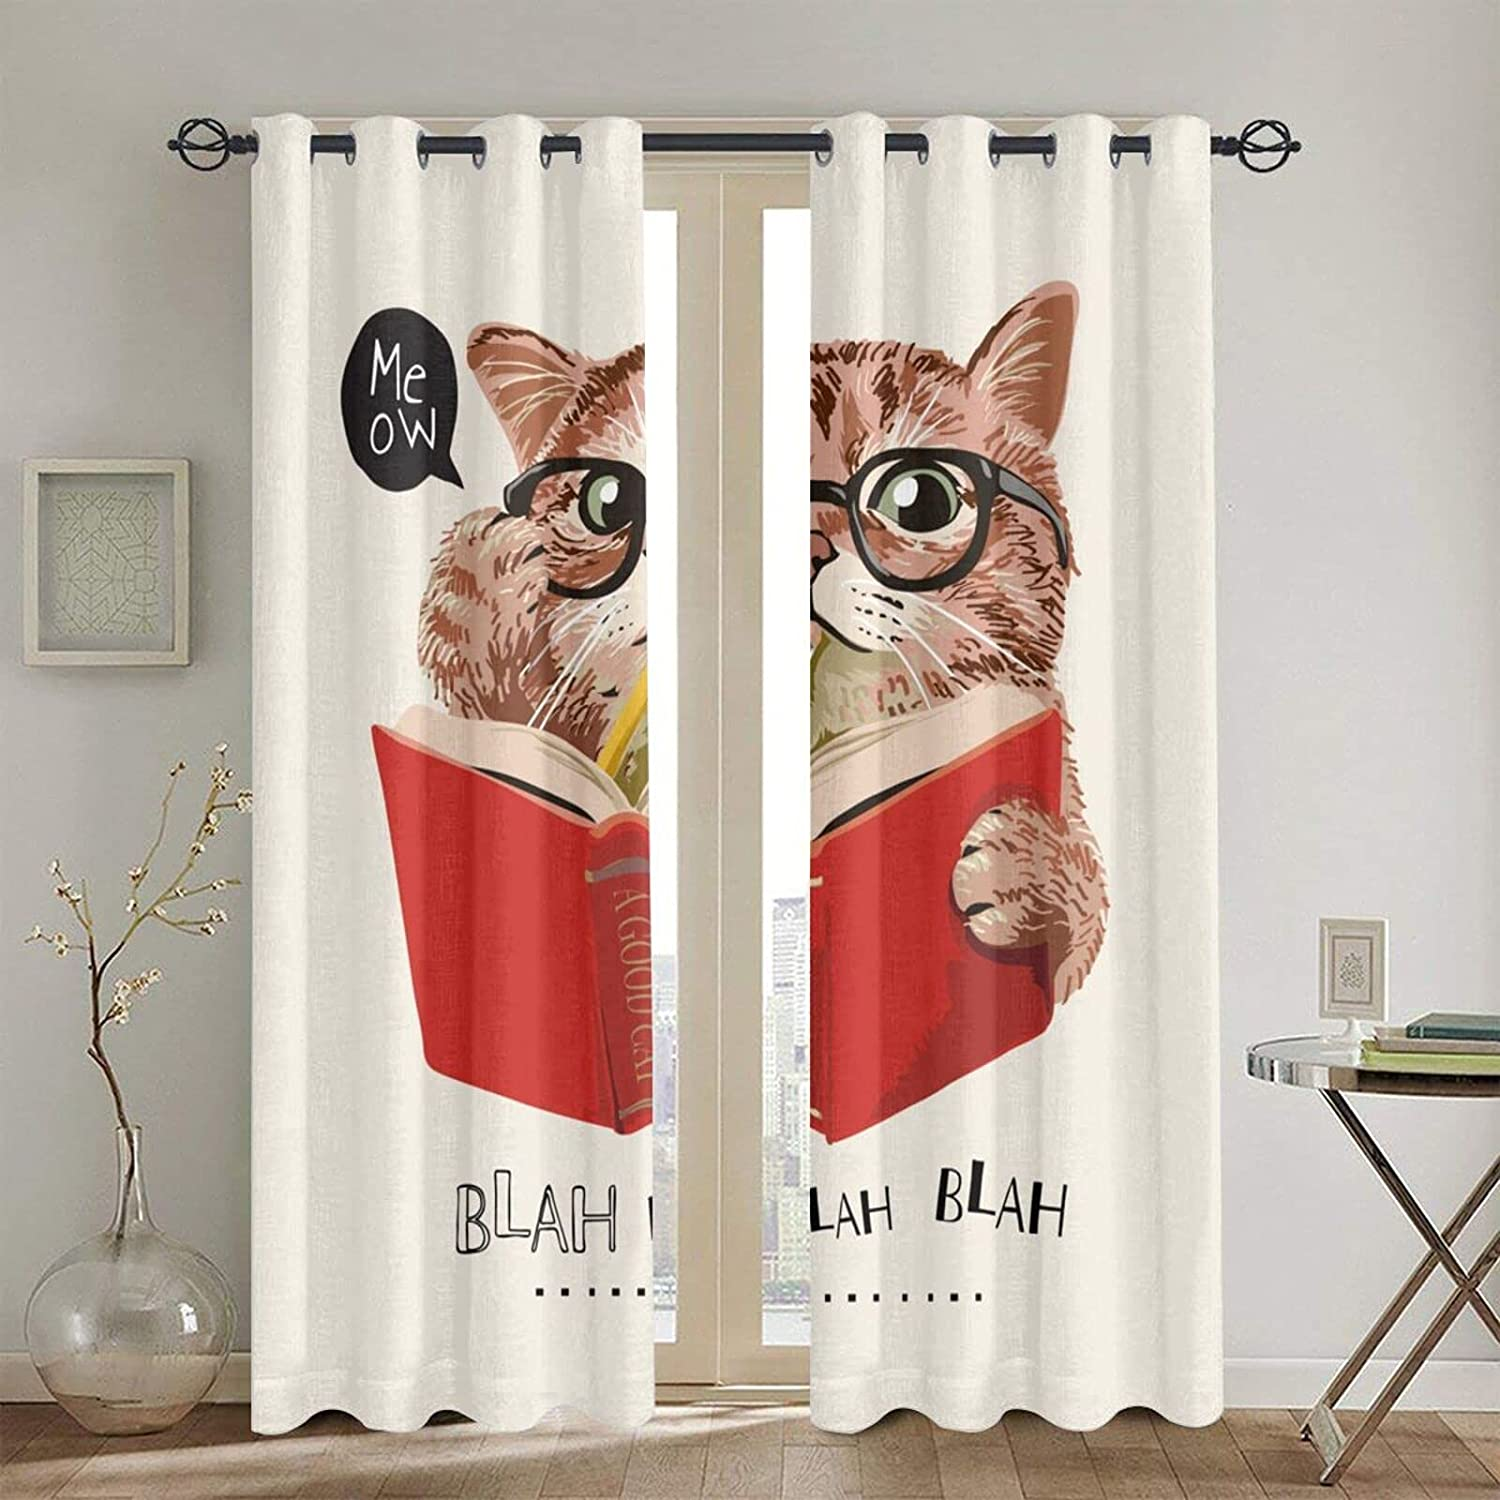 Free Shipping New onetoze Cat Curtains Cute Kawaii Selling and selling Kitten Reading Glasses in